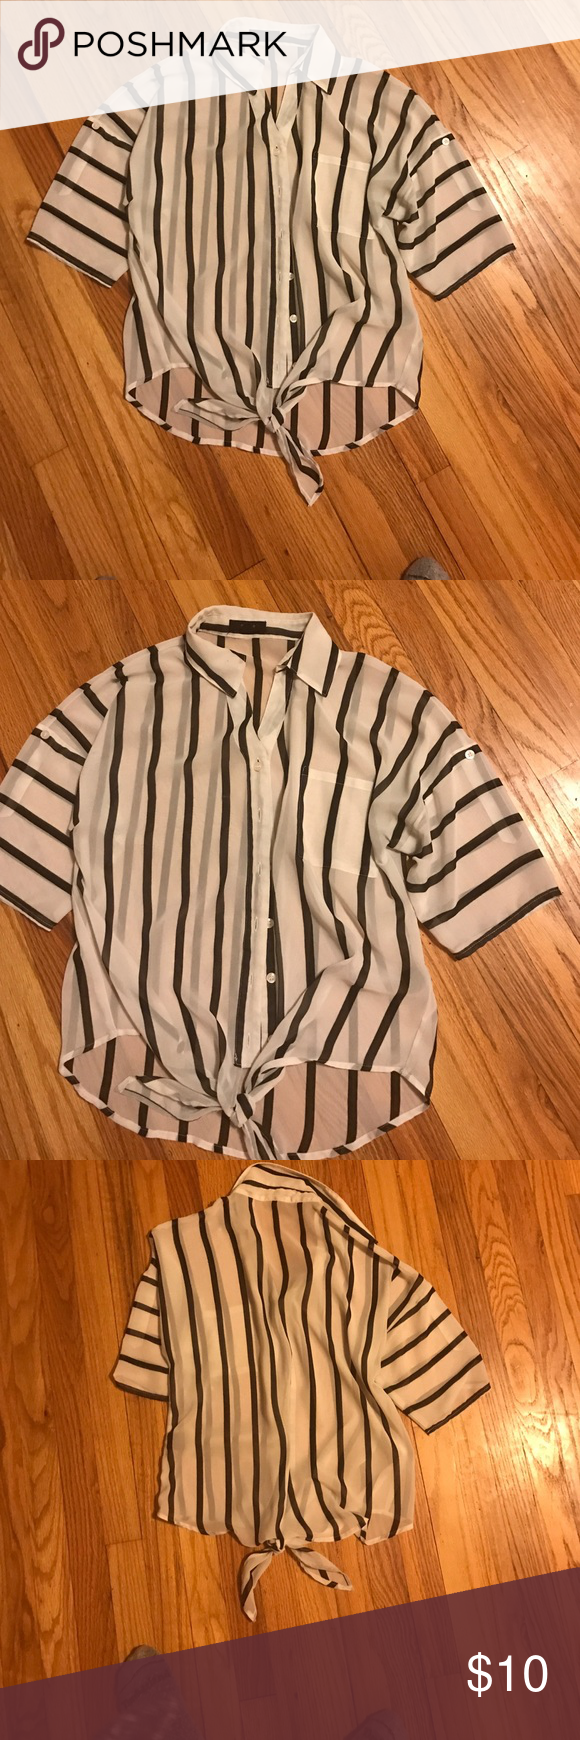 Short sleeve tie blouse Black and white short sleeve blouse that ties in the front of the top. It is sheer material and fits comfortably at a good length. The shirt is a size medium. Tops Blouses